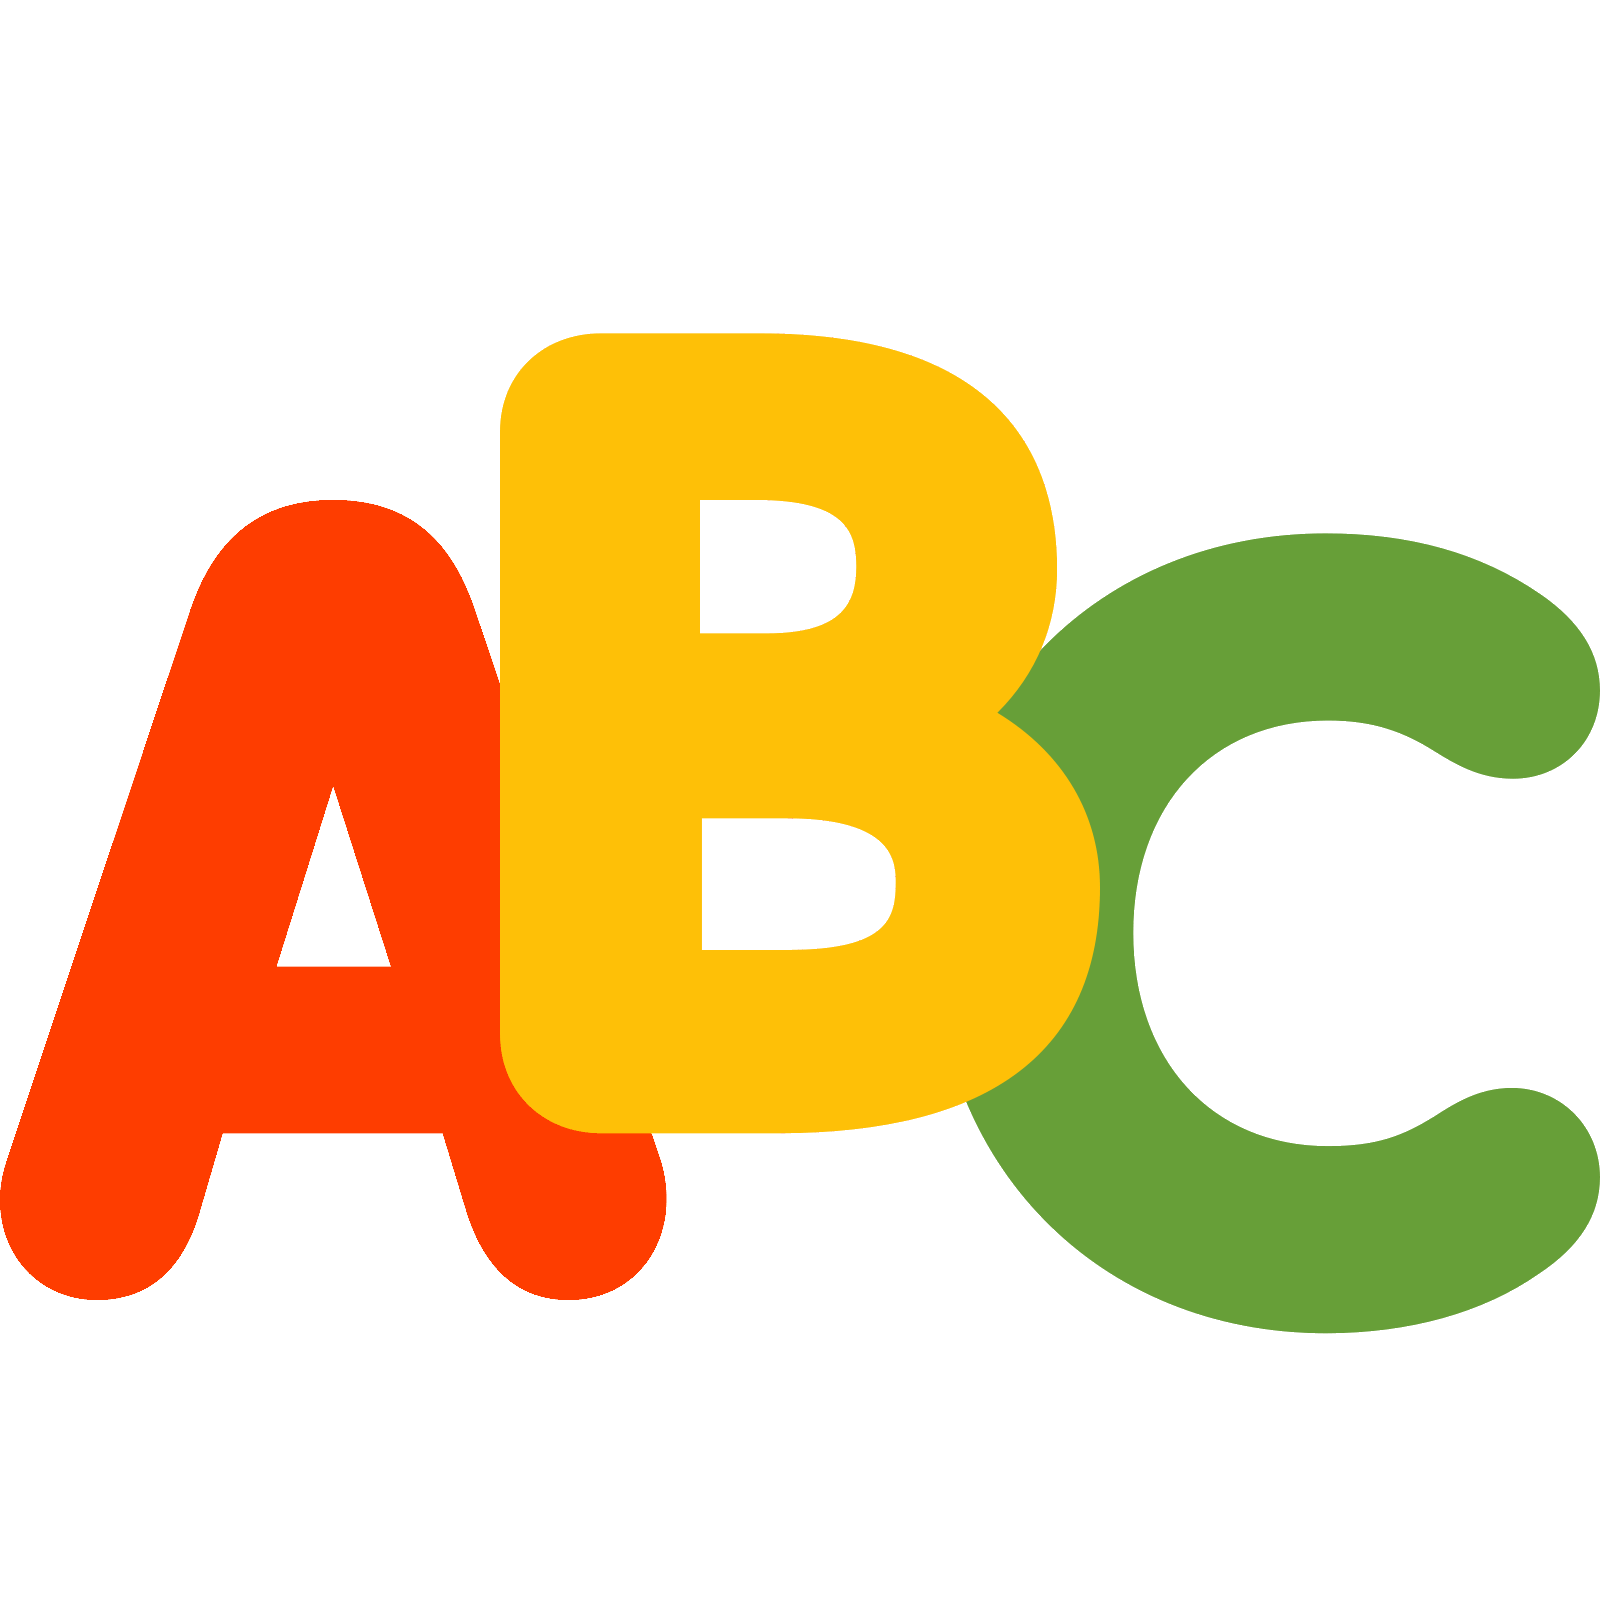 abc vector png transparent abc vectorpng images pluspng